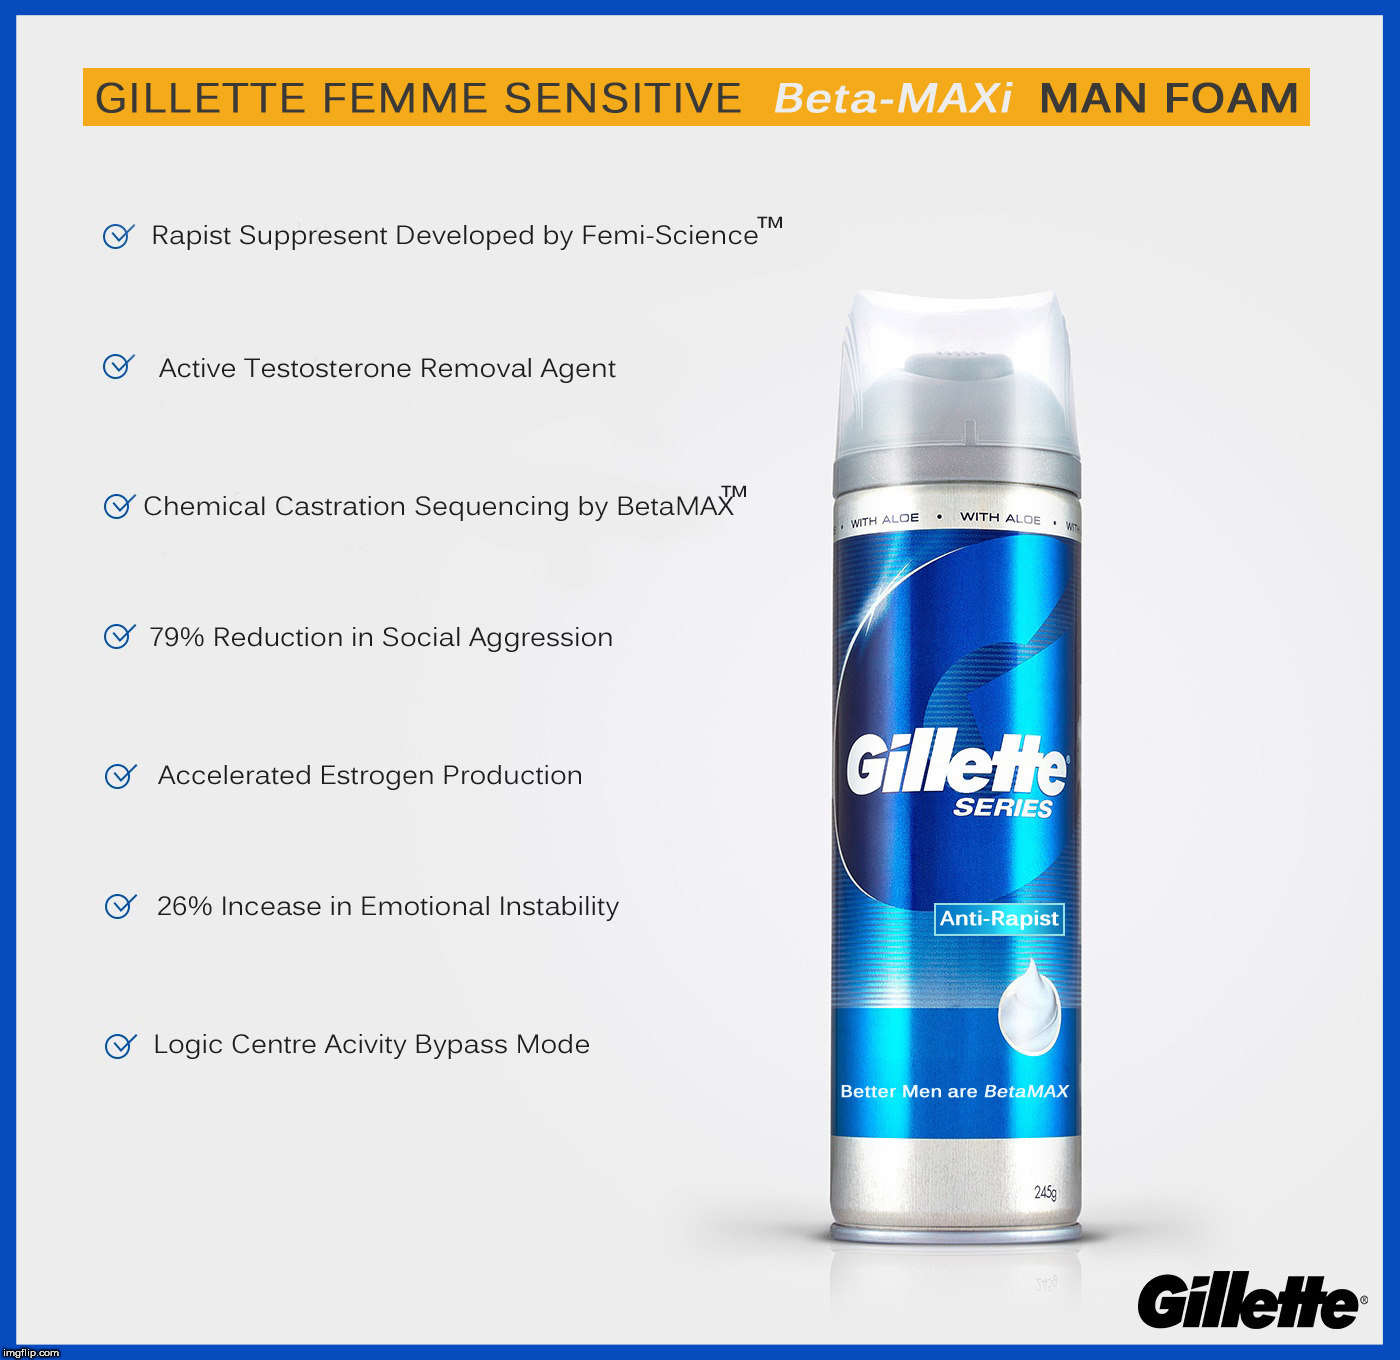 Gillette | image tagged in toxic masculinity | made w/ Imgflip meme maker